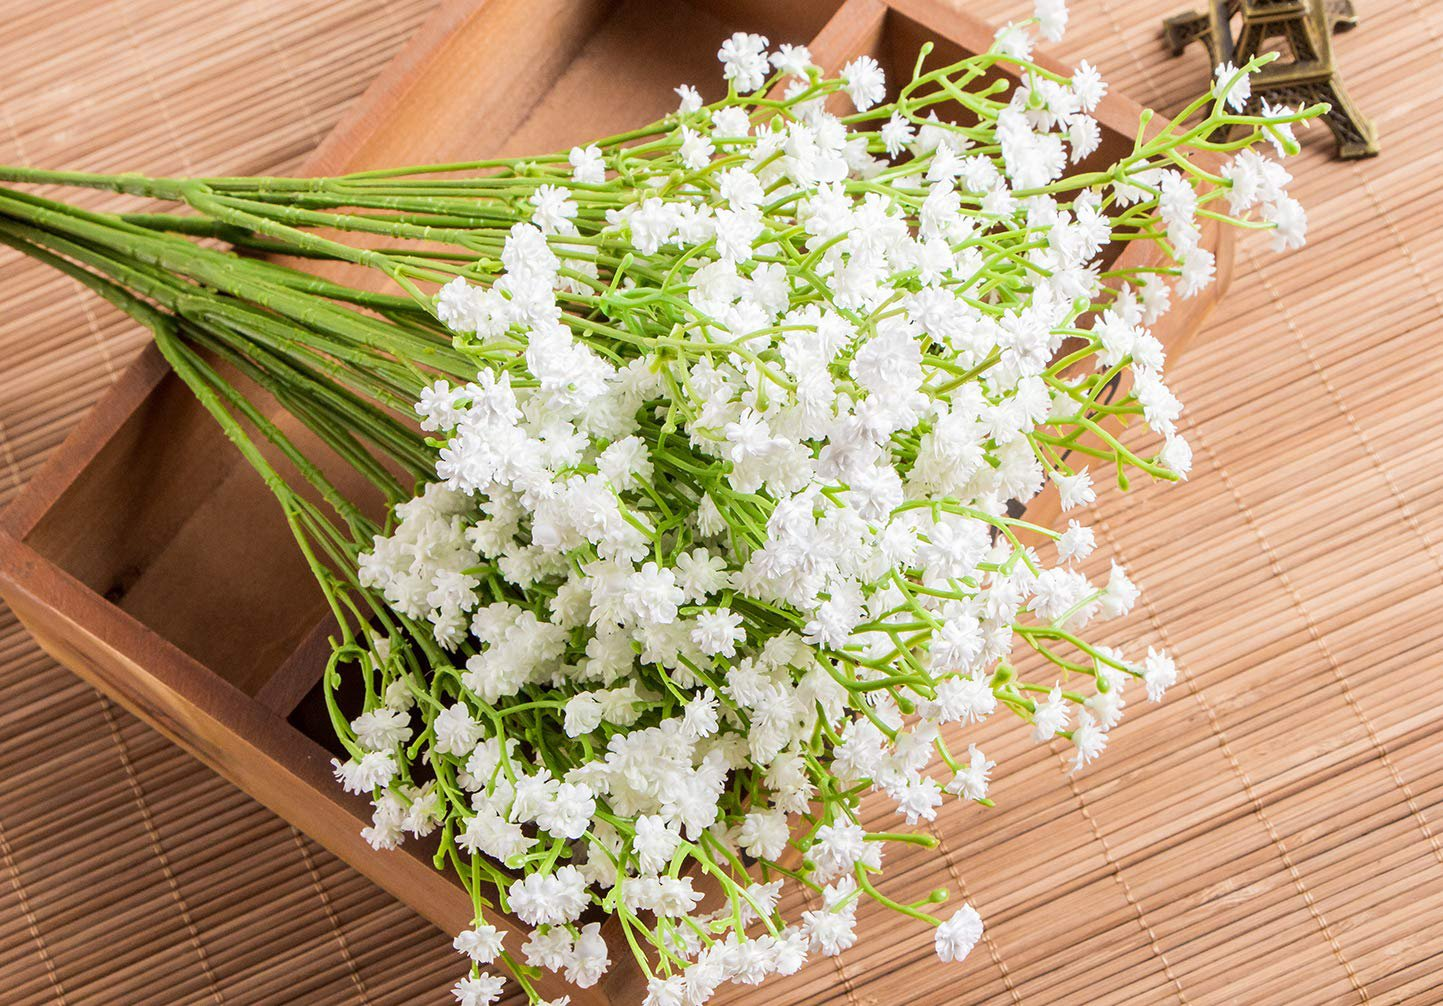 Artificial, fake, baby's breath flowers on table